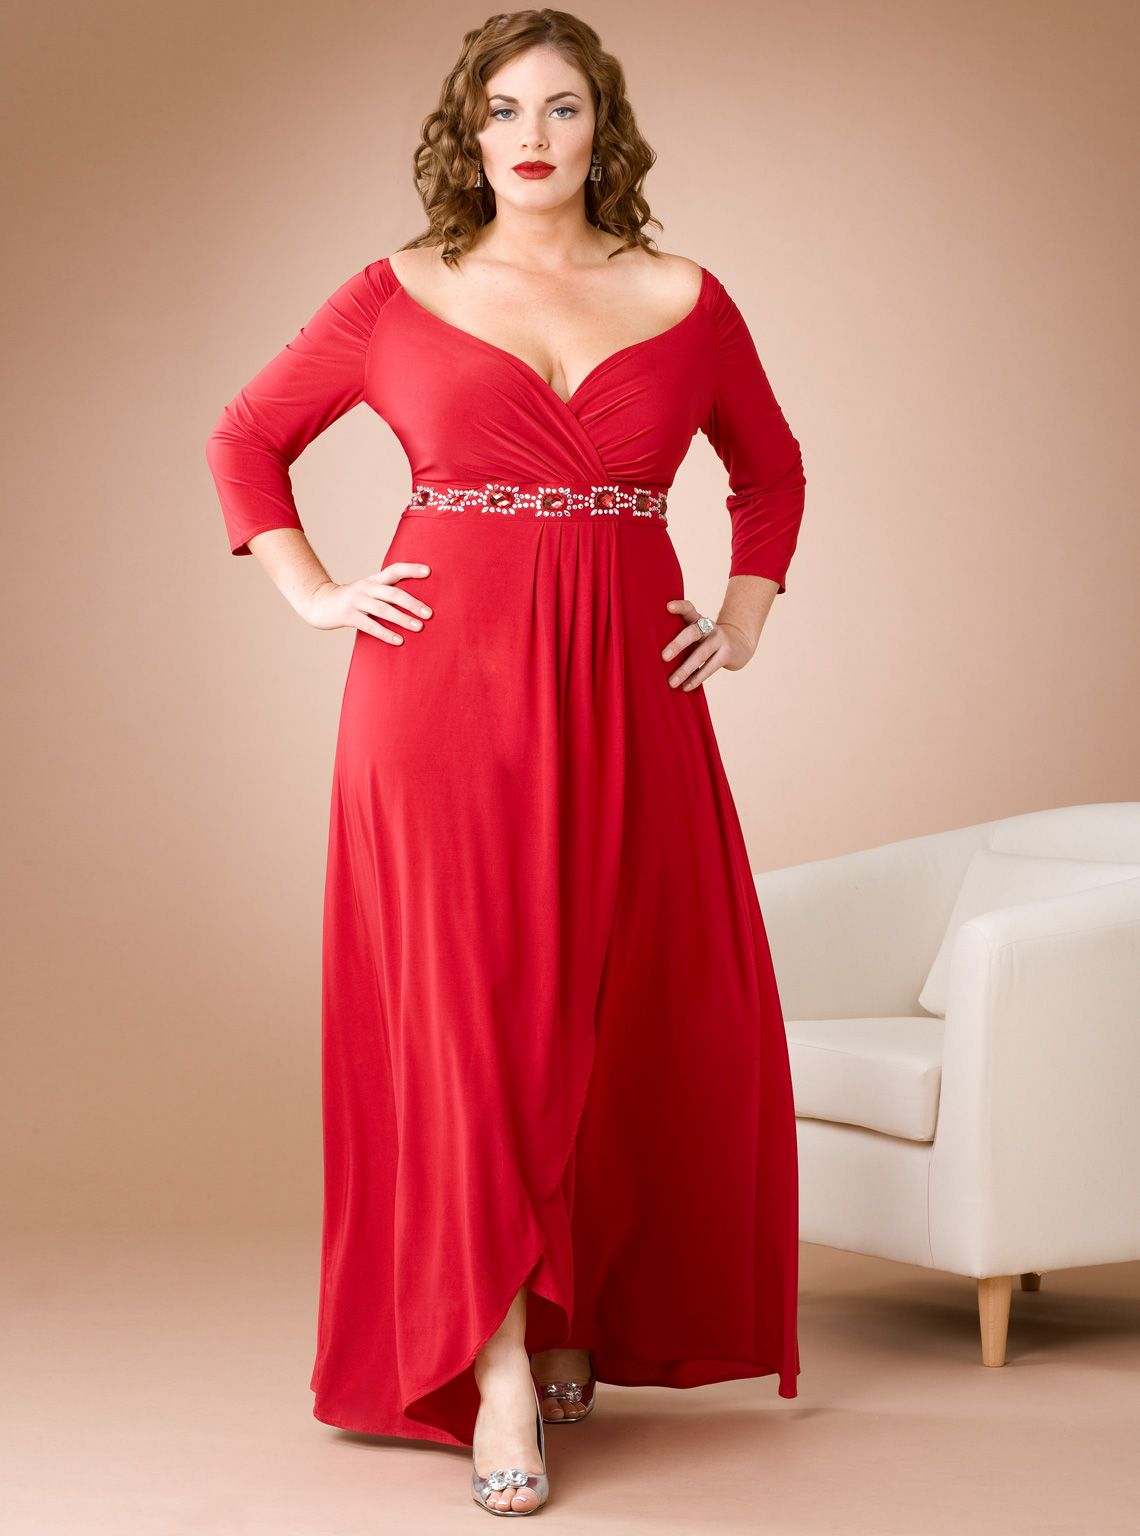 Image detail for -plus size prom dresses Plus Size Dresses Evening Party  Trends 2012 0504c7263ae3